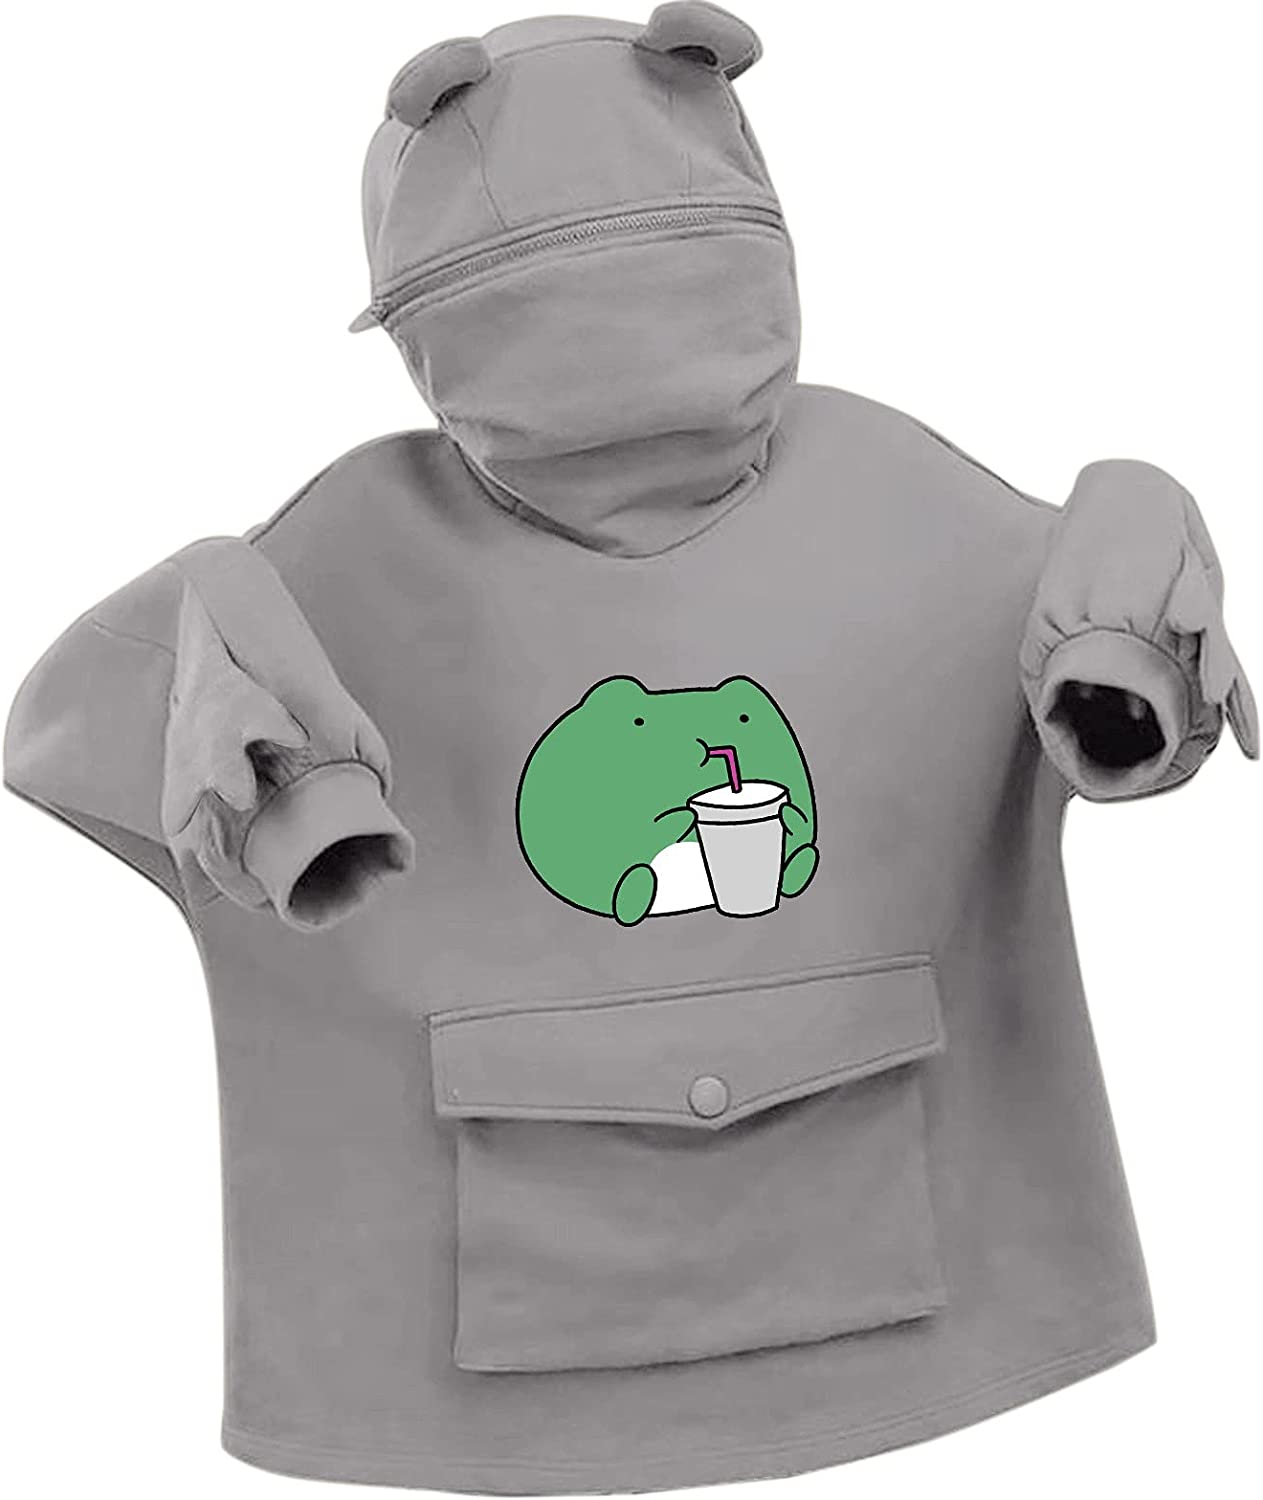 Hotkey Hoodies for Women Cute Frog Drink Hoodie Pullover Zipper Mouth Hooded Sweatshirt with Large Front Pocket for Teen Girl